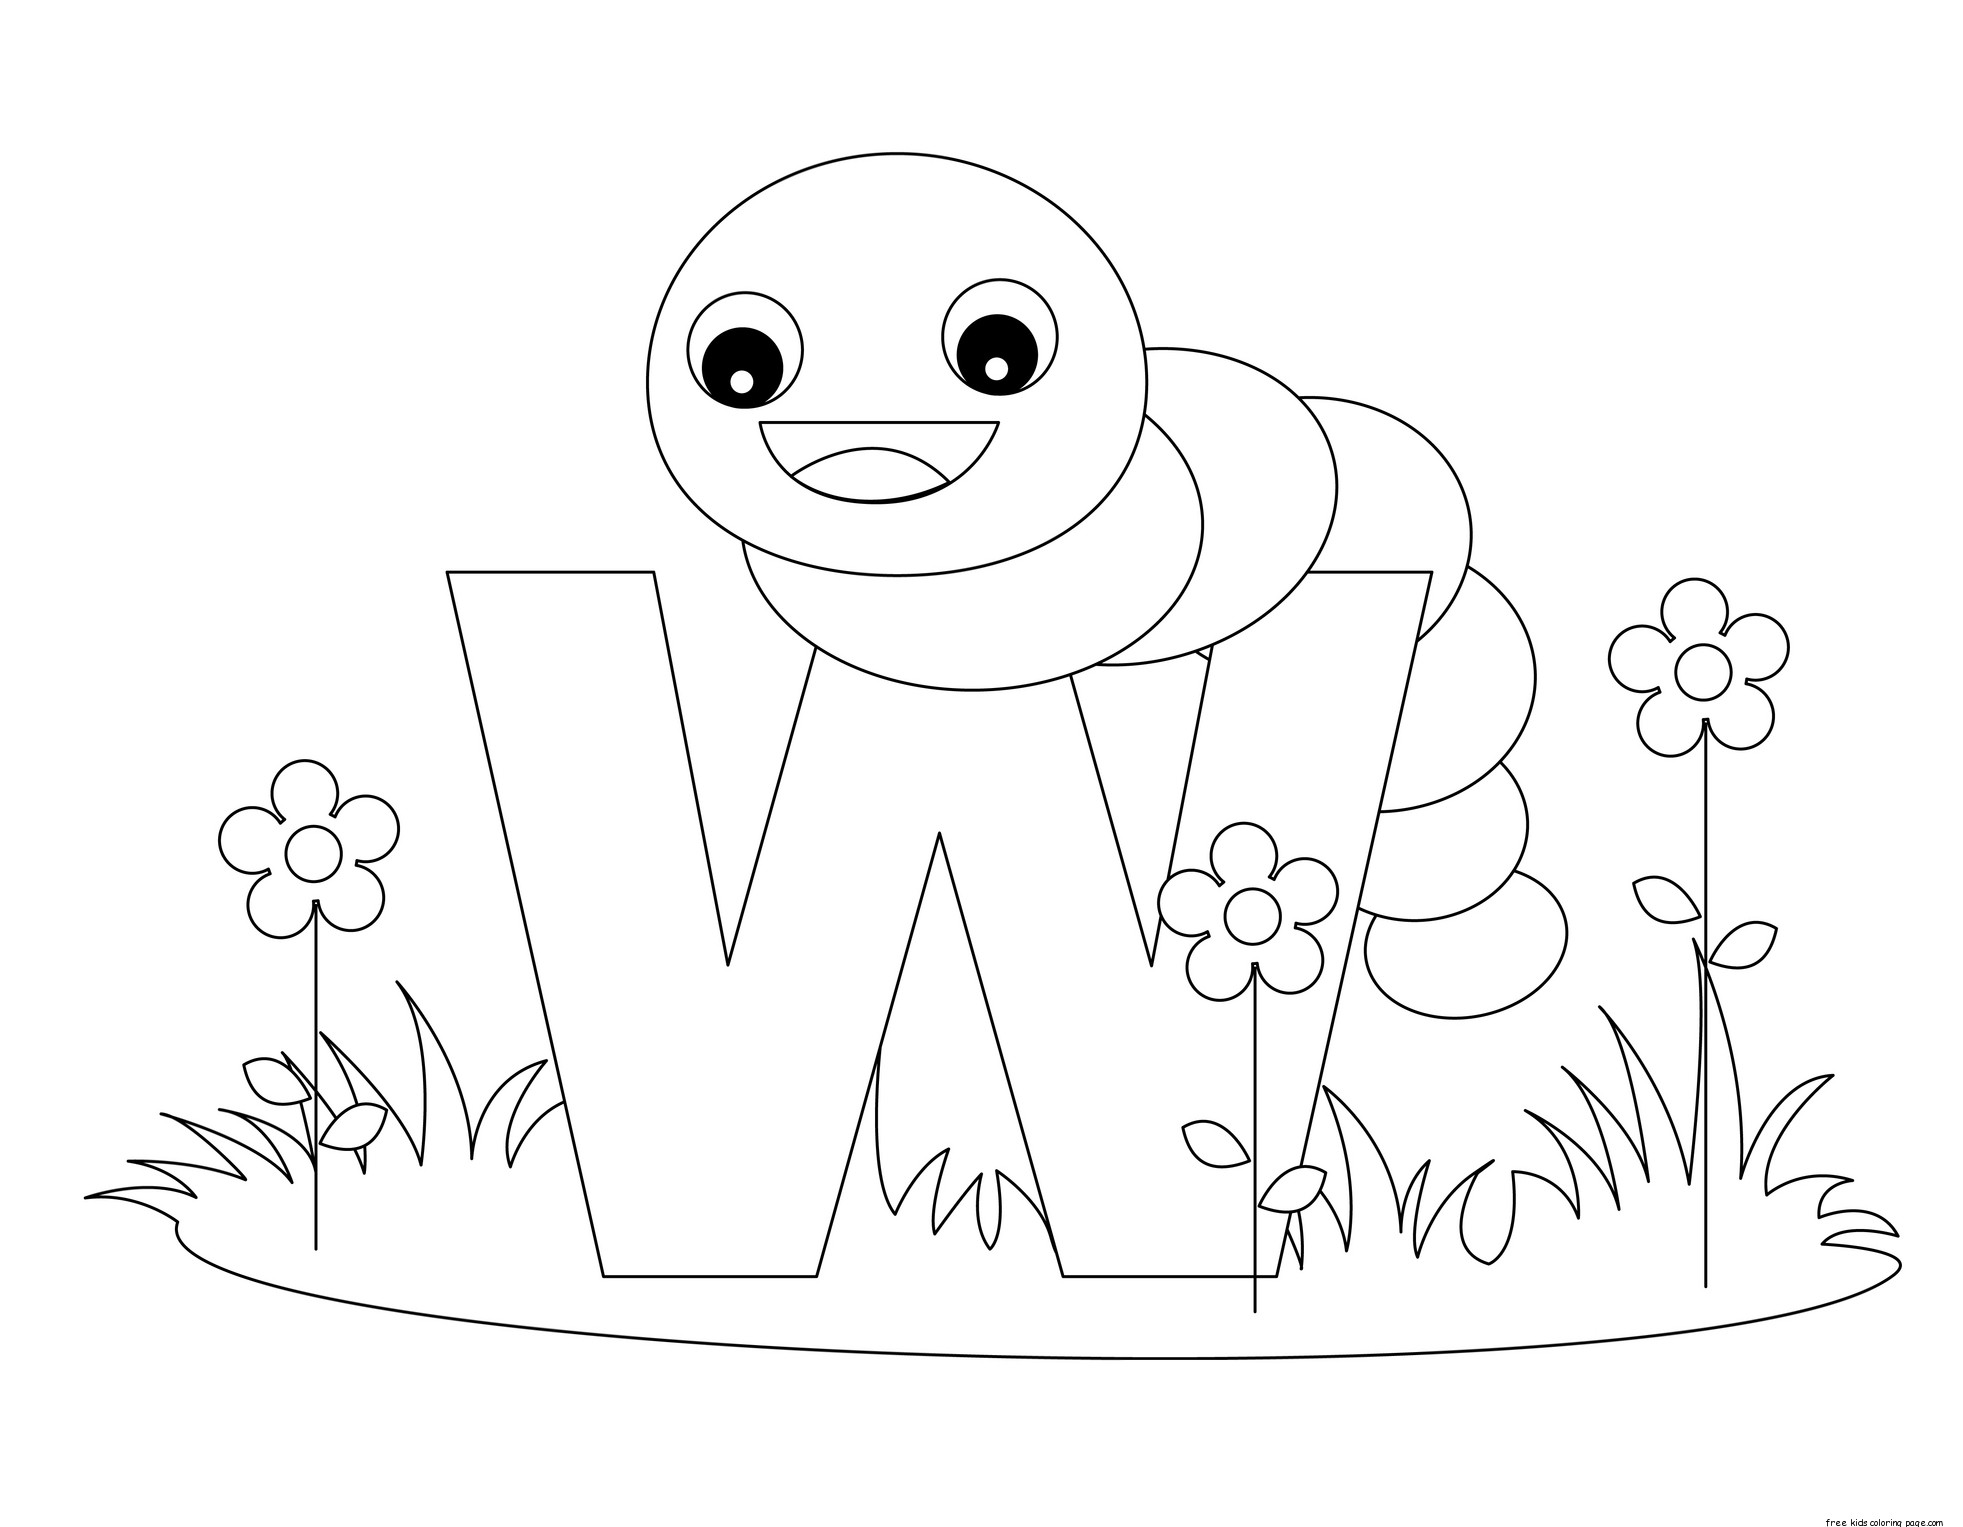 Alphabet Coloring Pages W : Printable alphabet letters with animals w is for